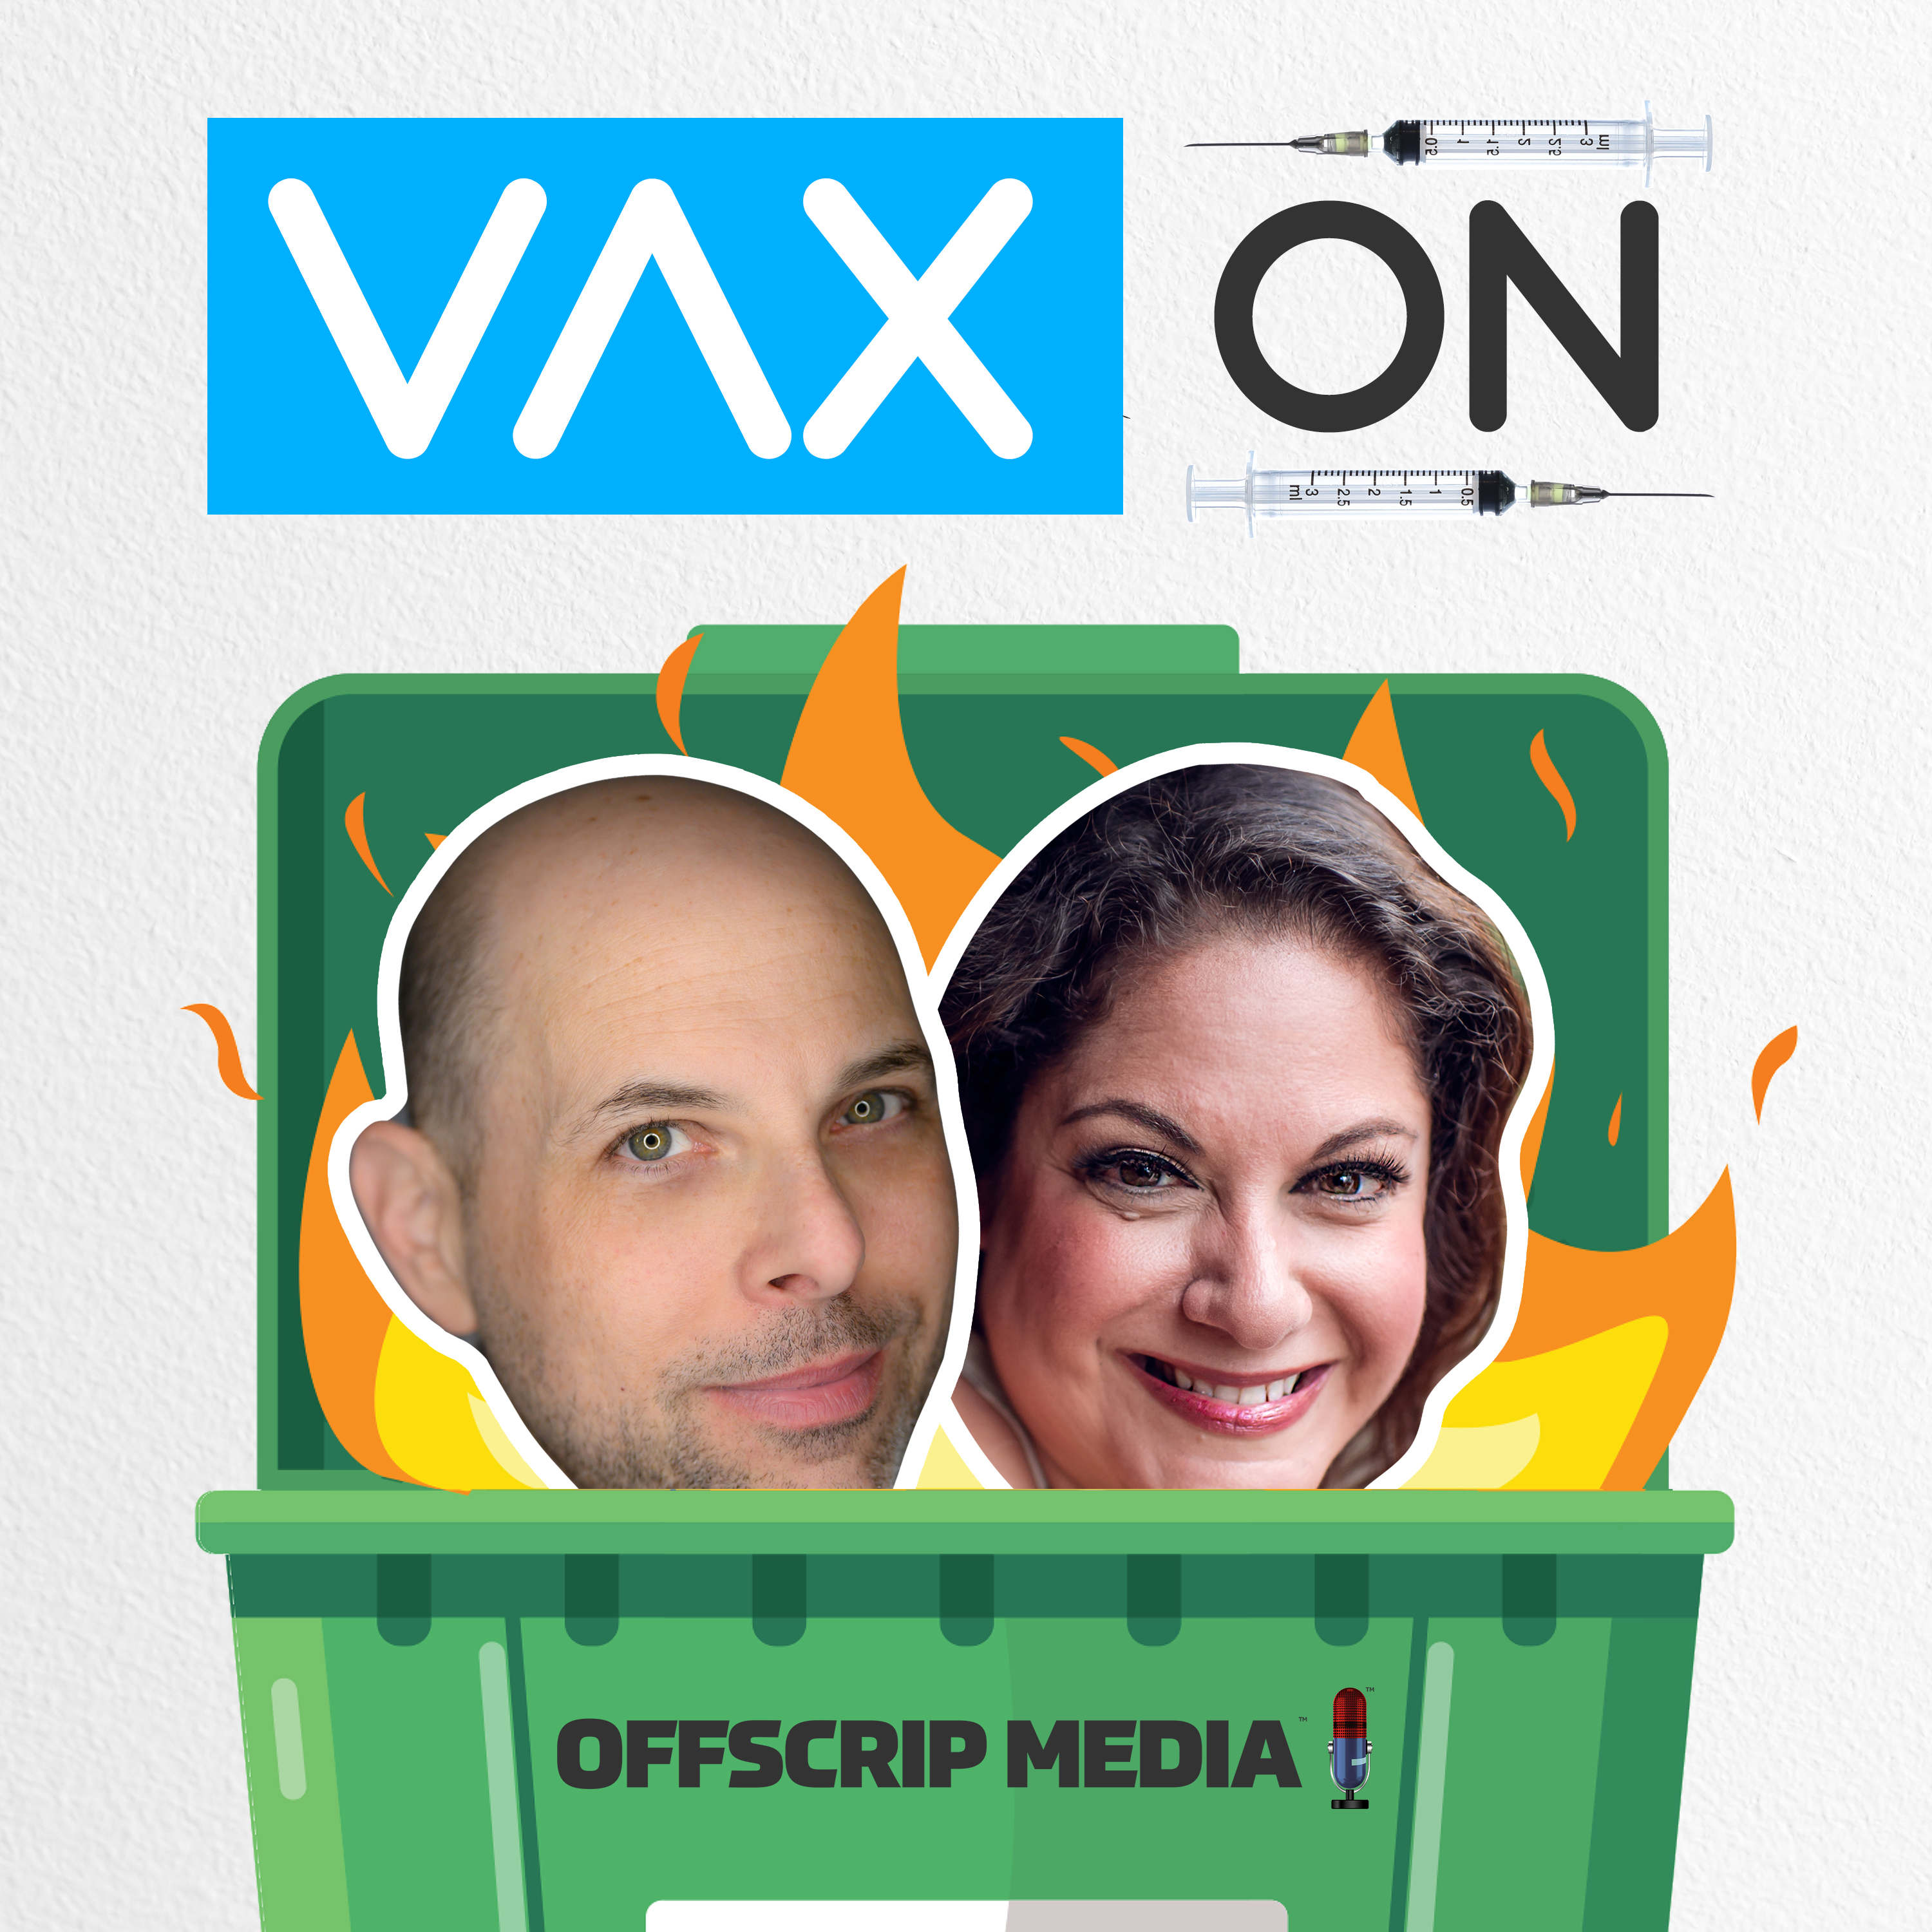 VAX ON: Misinformation, Tourist Enticements, and 'Impending Doom'